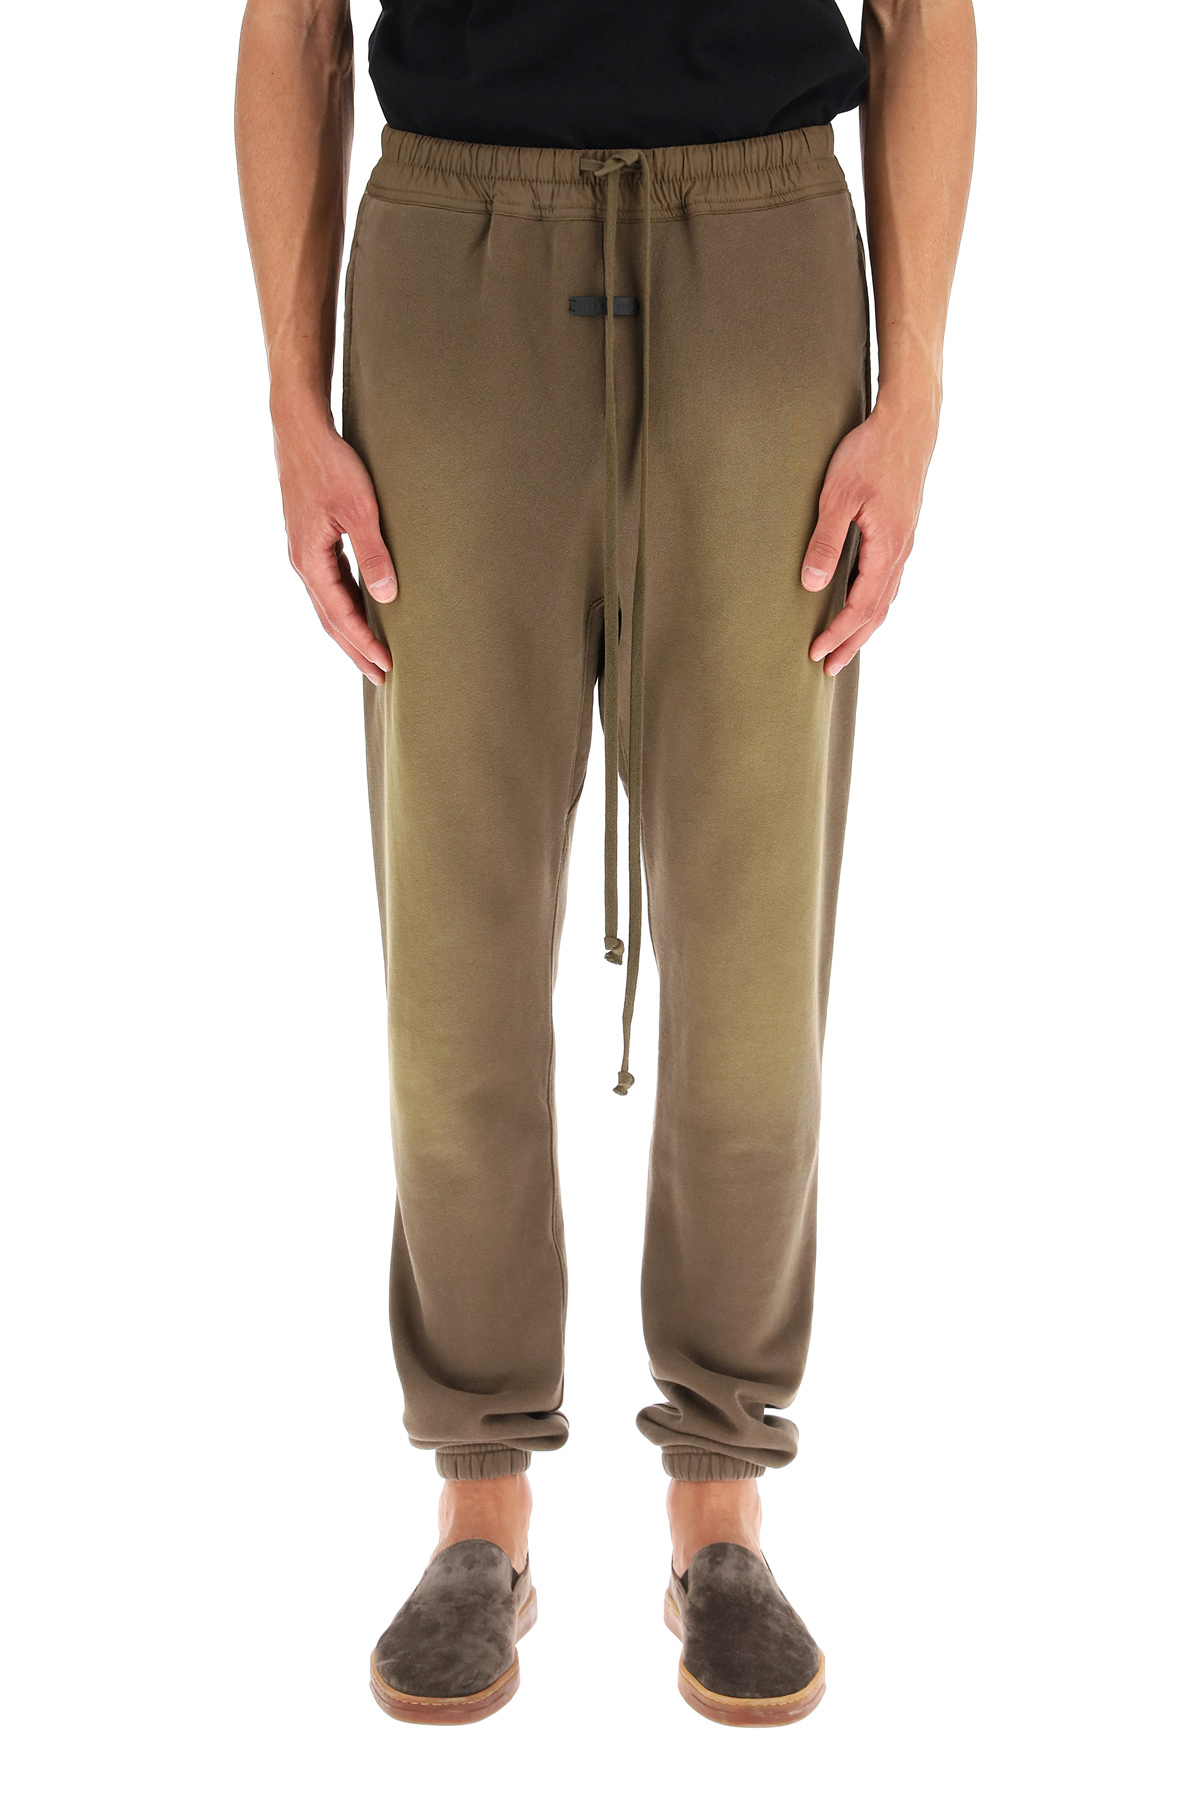 Fear of god joggers the vintage